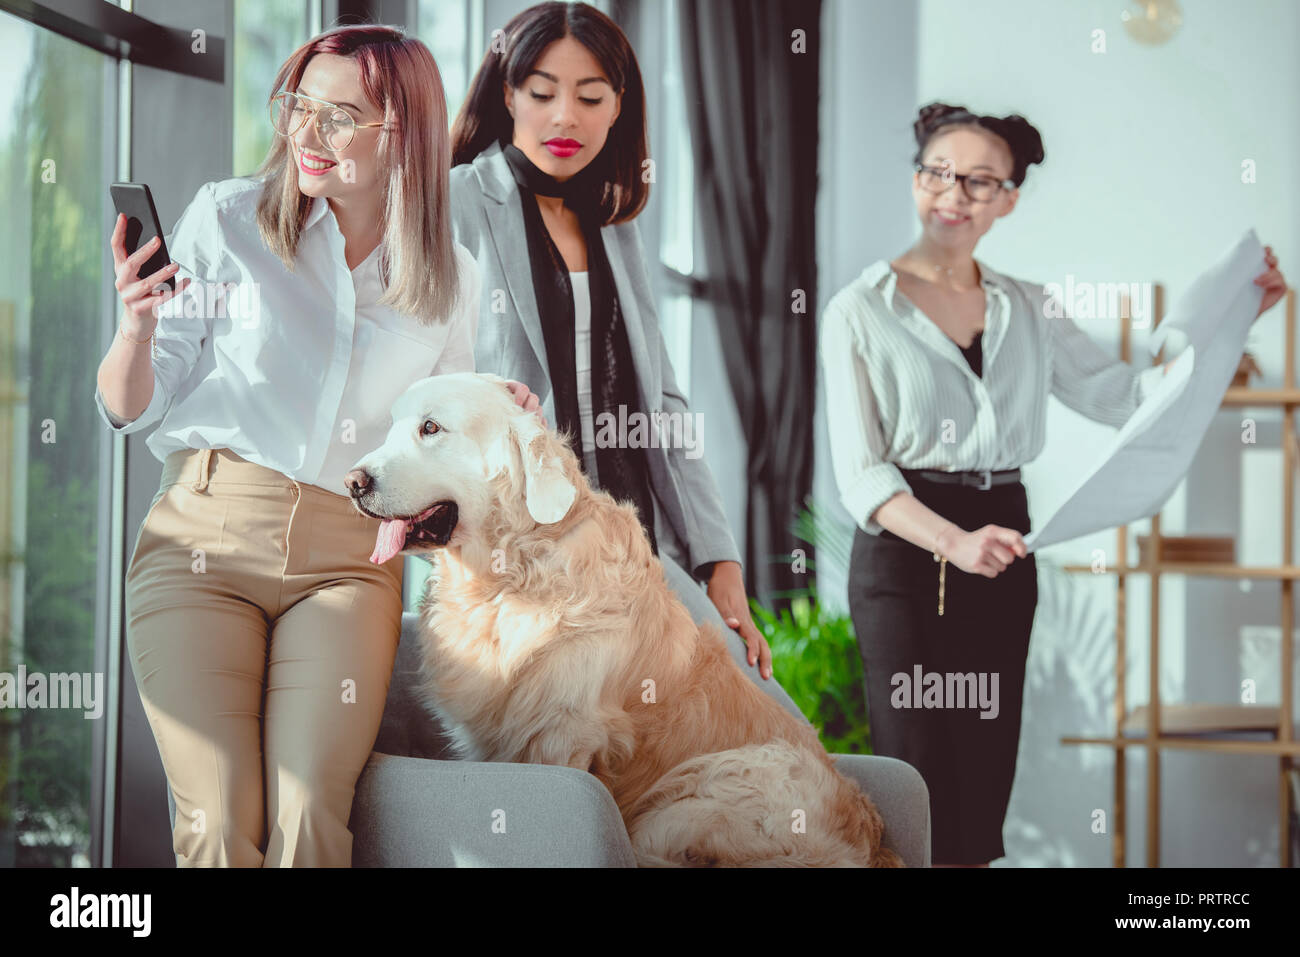 young multiethnic businesswomen in formal wear with dog working at office - Stock Image